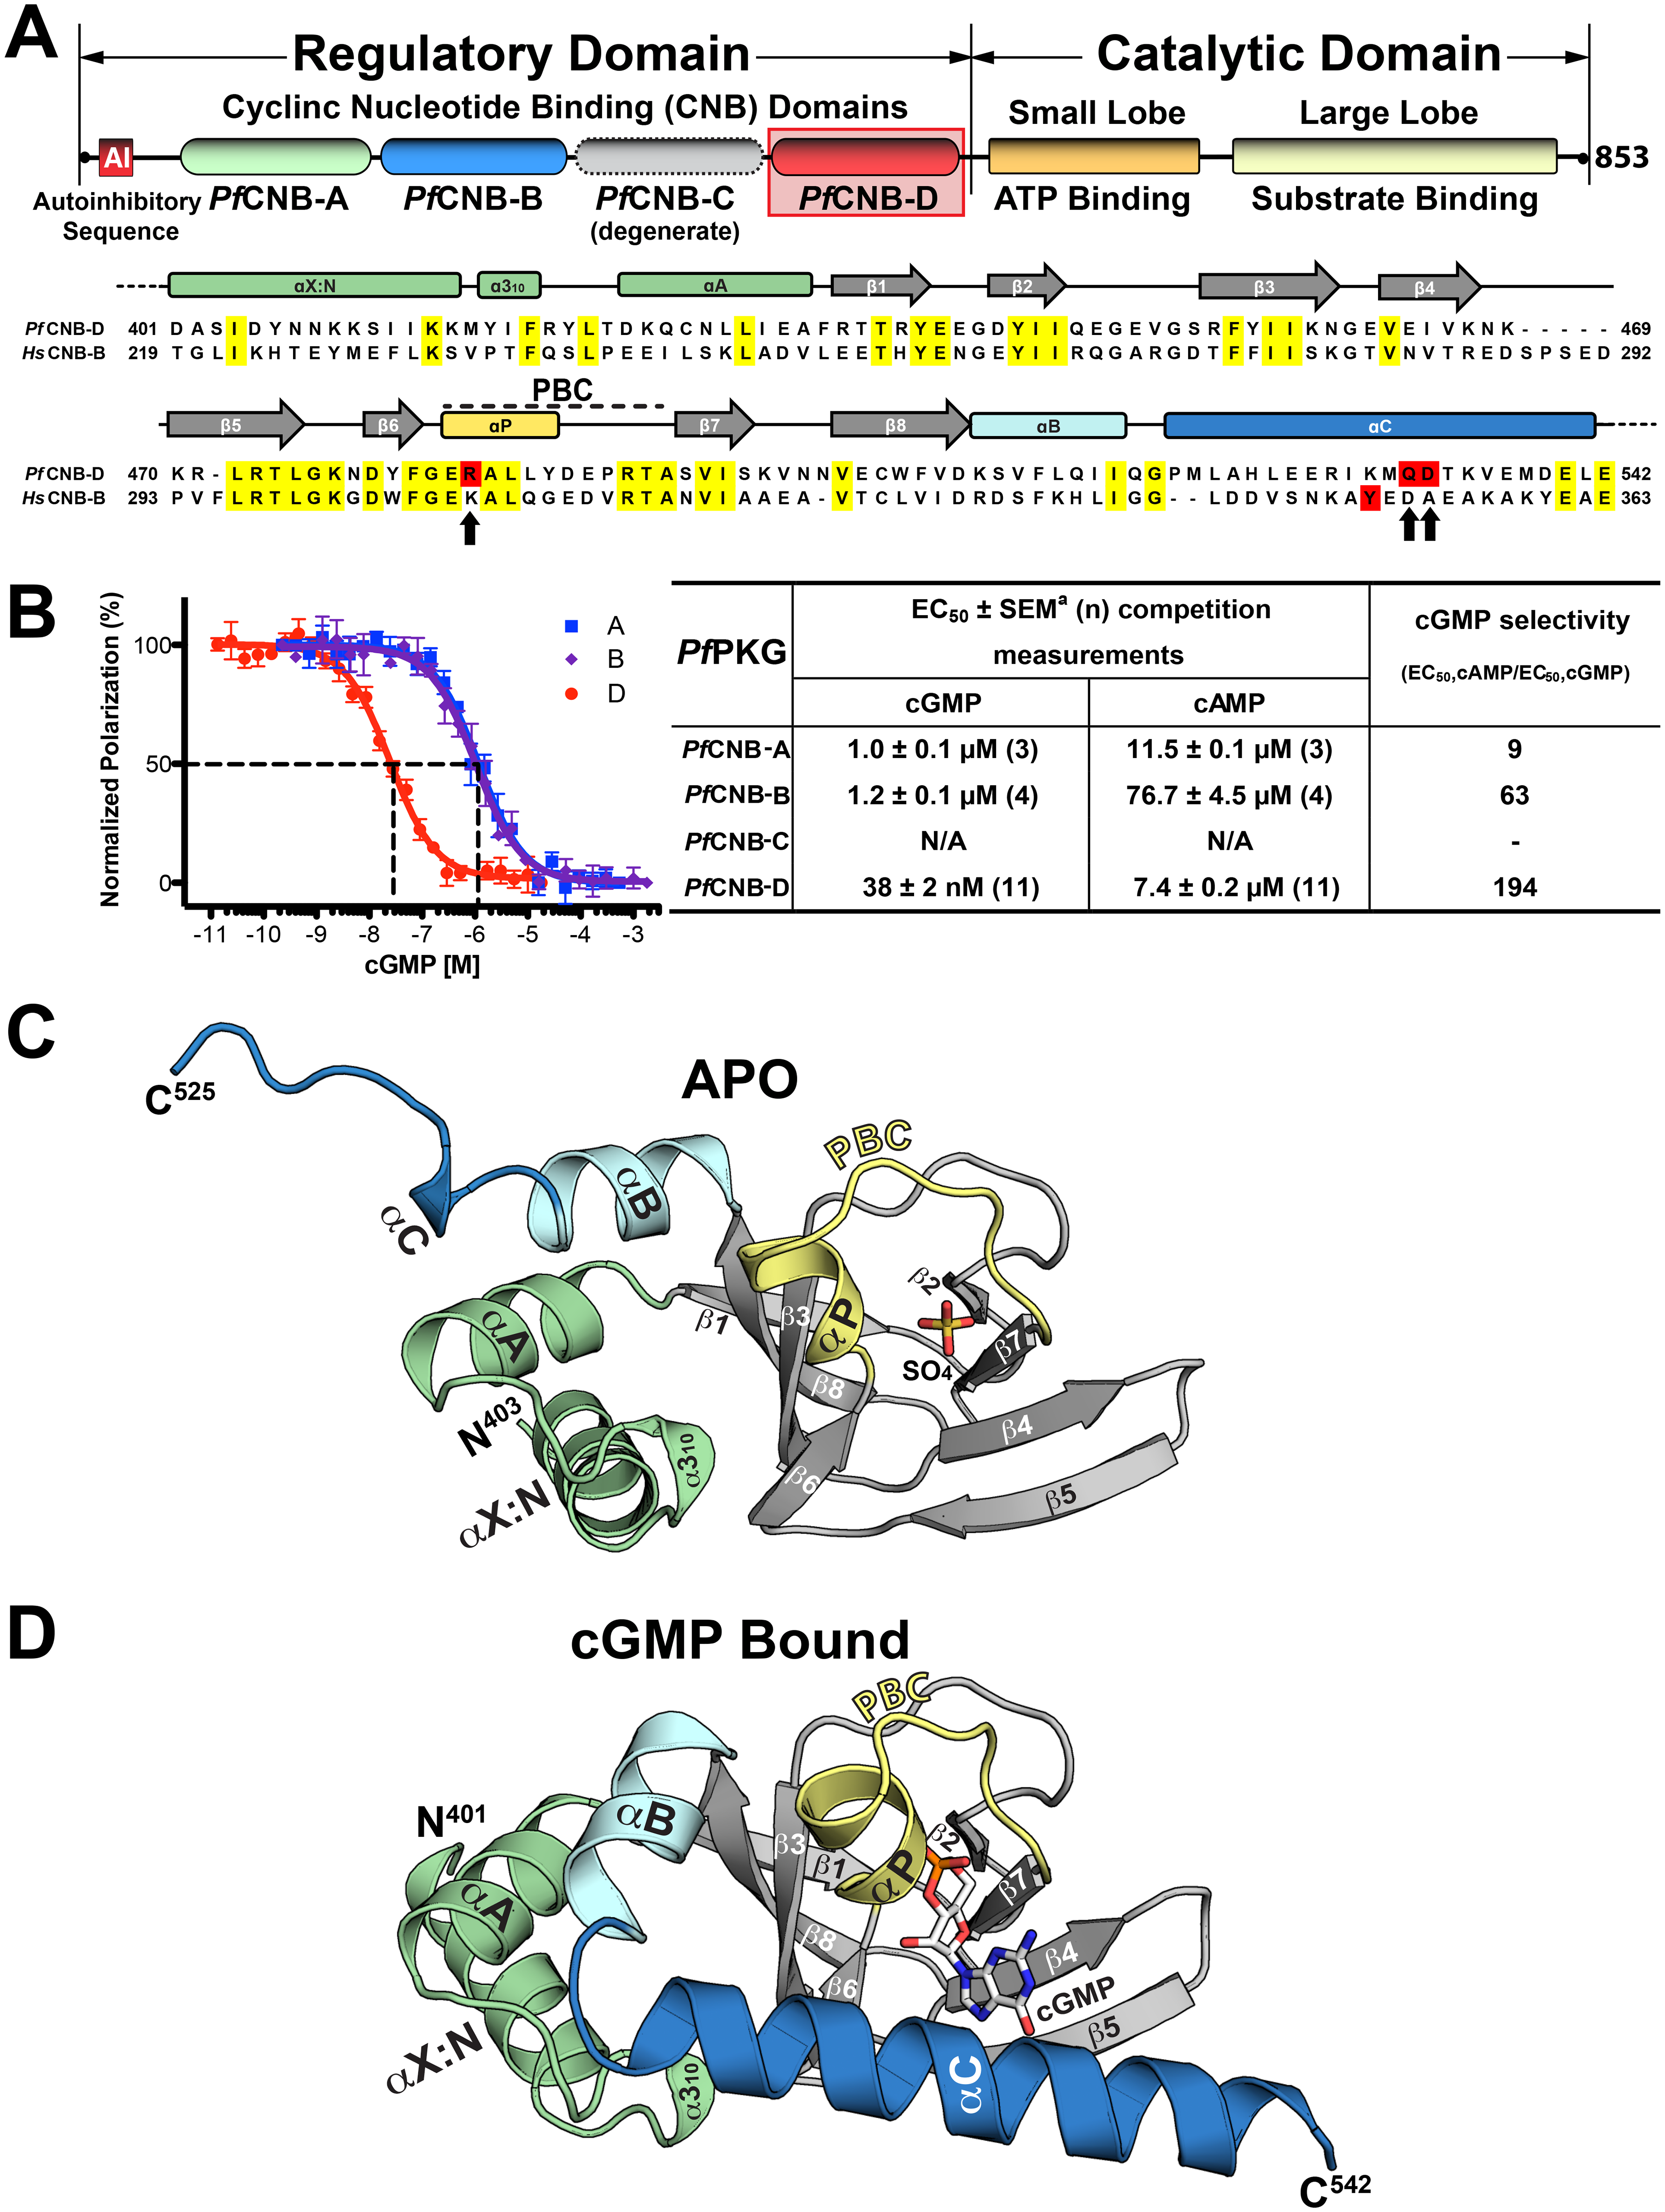 Domain organization and overall structures of <i>Pf</i>CNB-D.